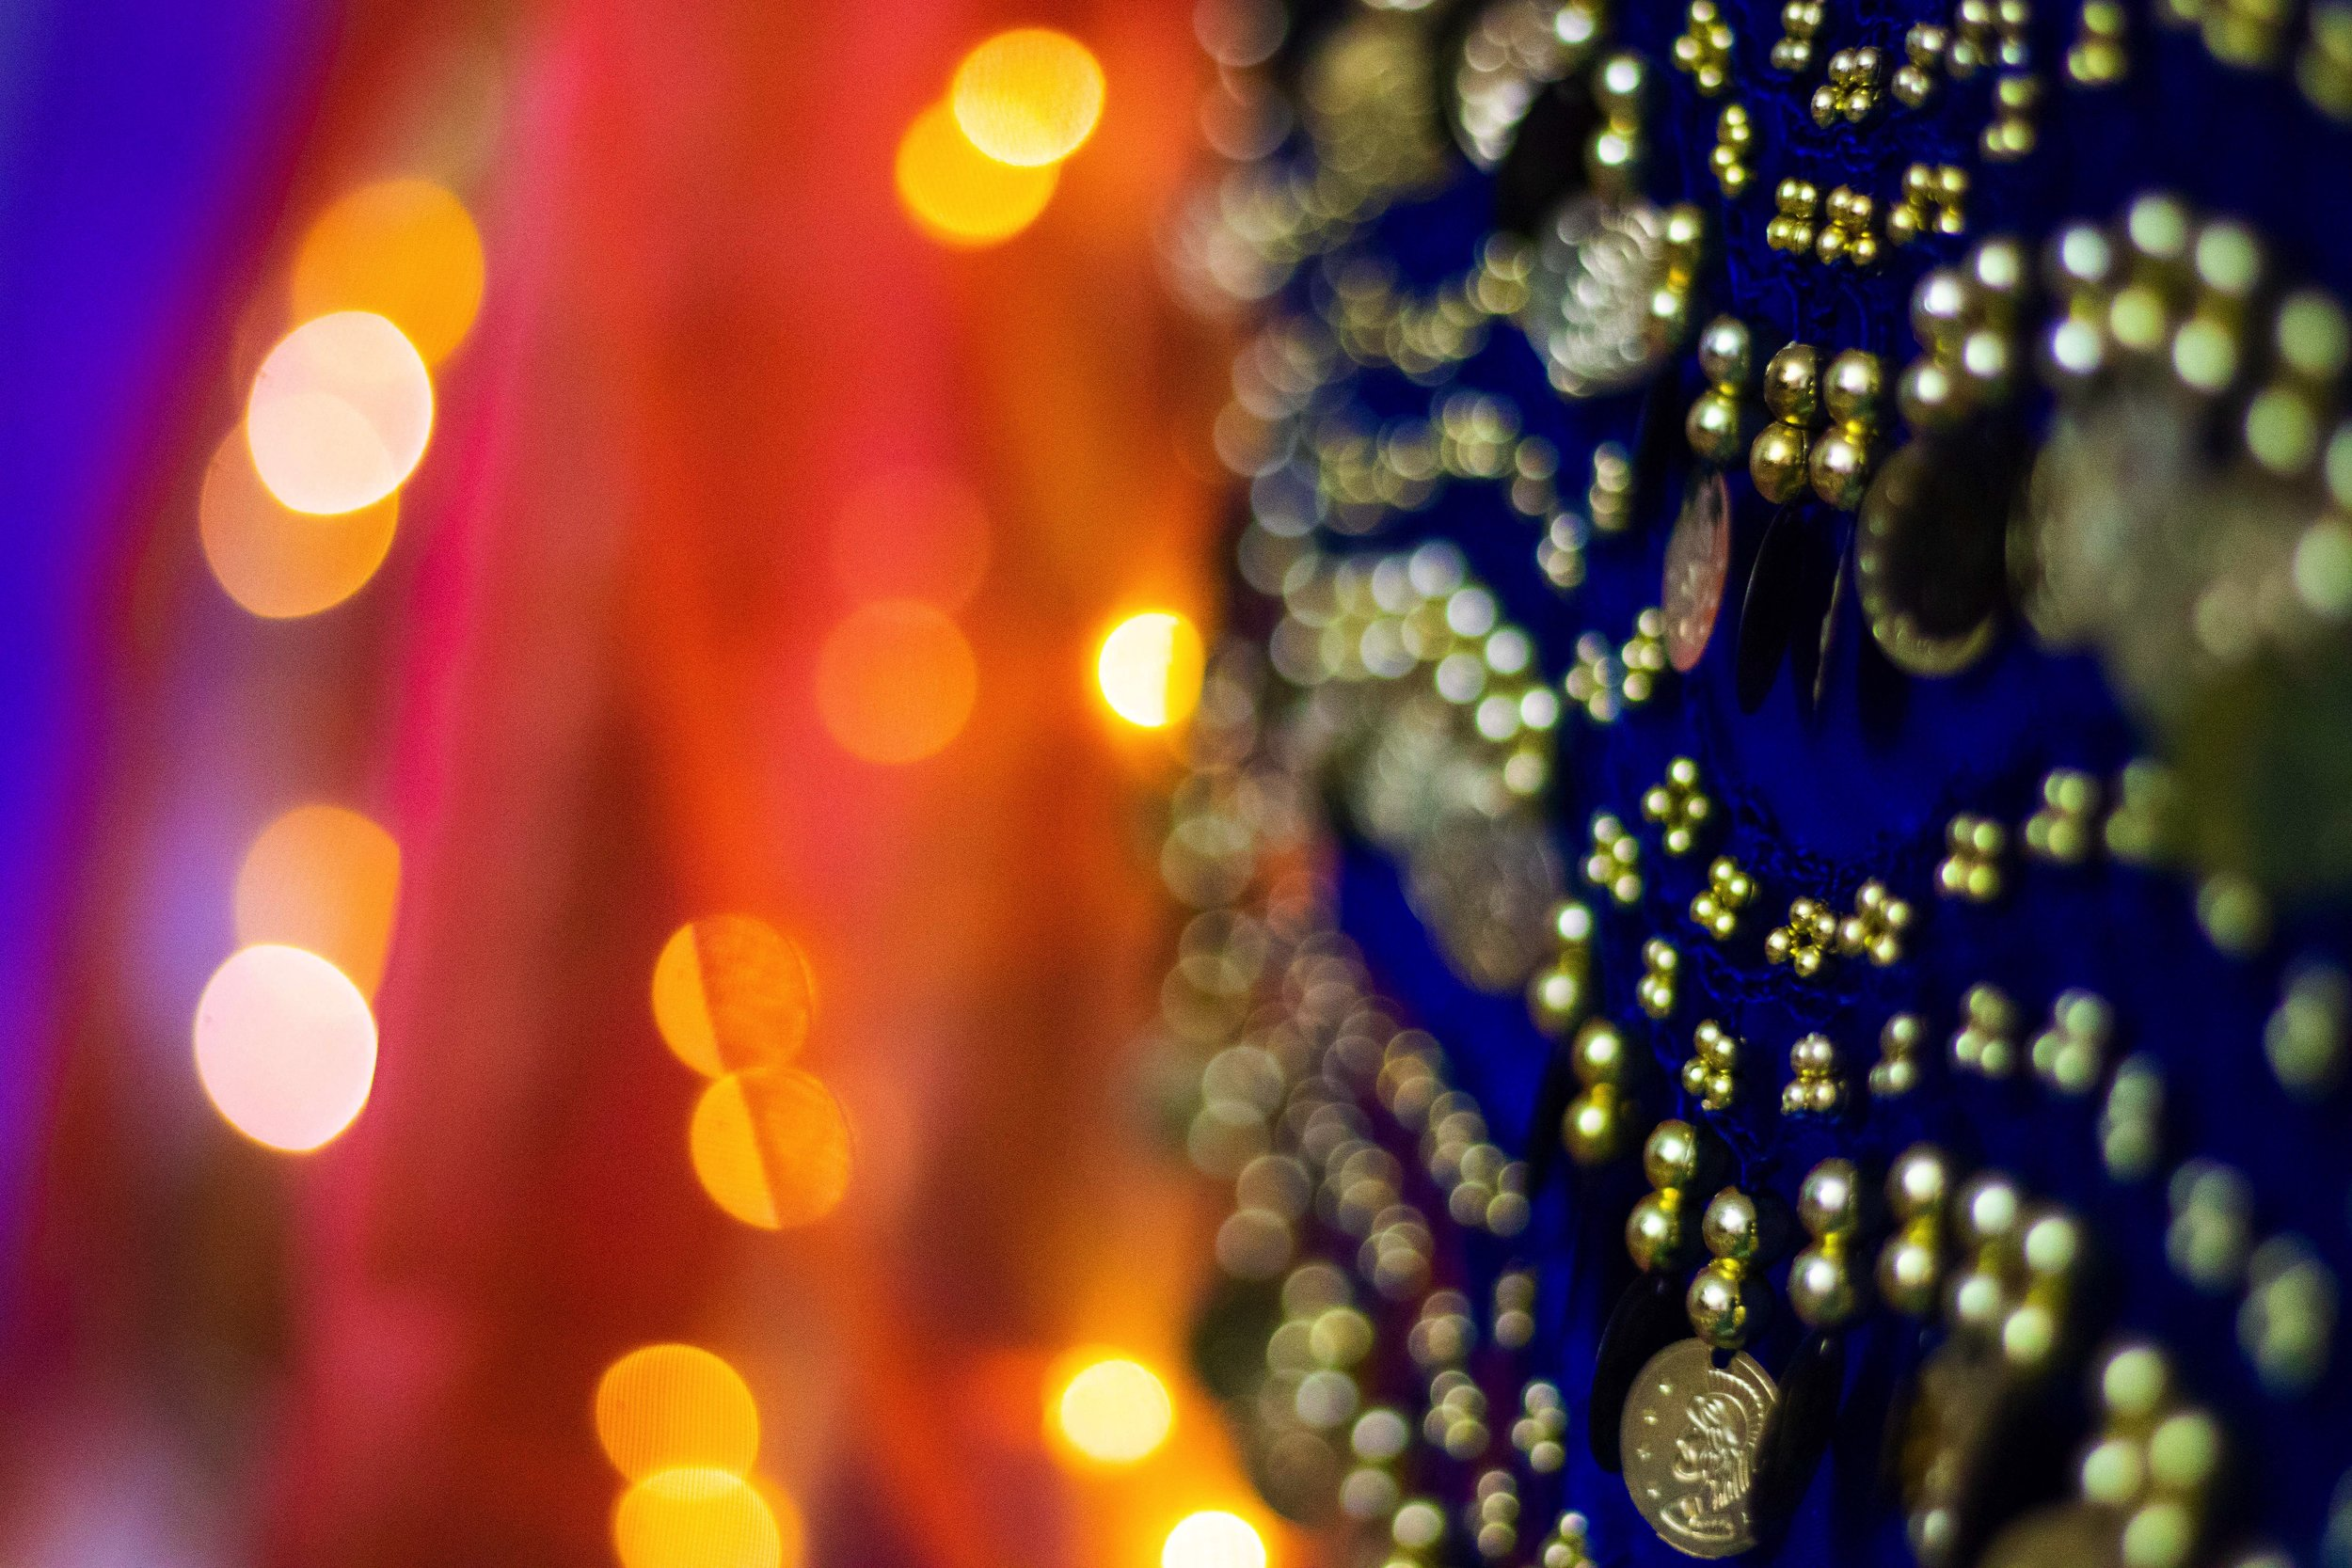 Arabian Nights - For the Princess dreaming of magic carpets, a genie in a bottle and a whole new world. Bright colors, exotics bunting, luxurious gold lamp, stunning fairy lights and much more!